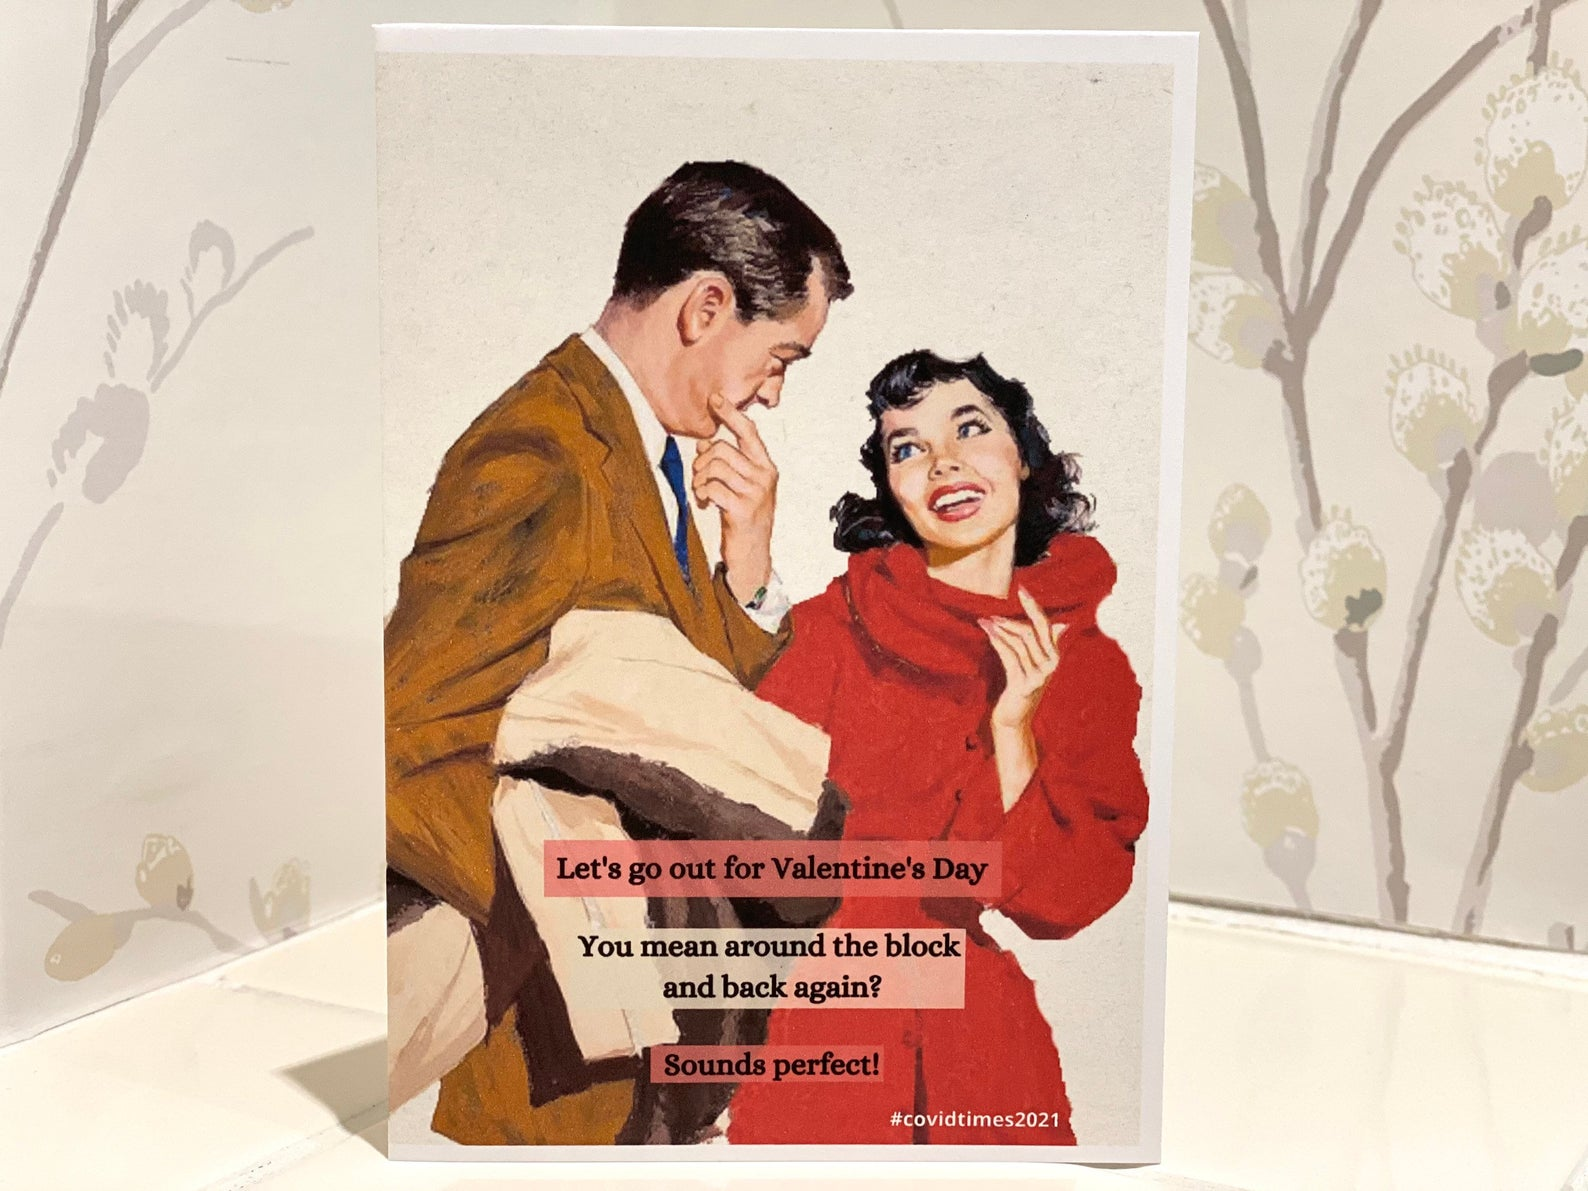 couple pictured on a vintage-style Valentine's Day card